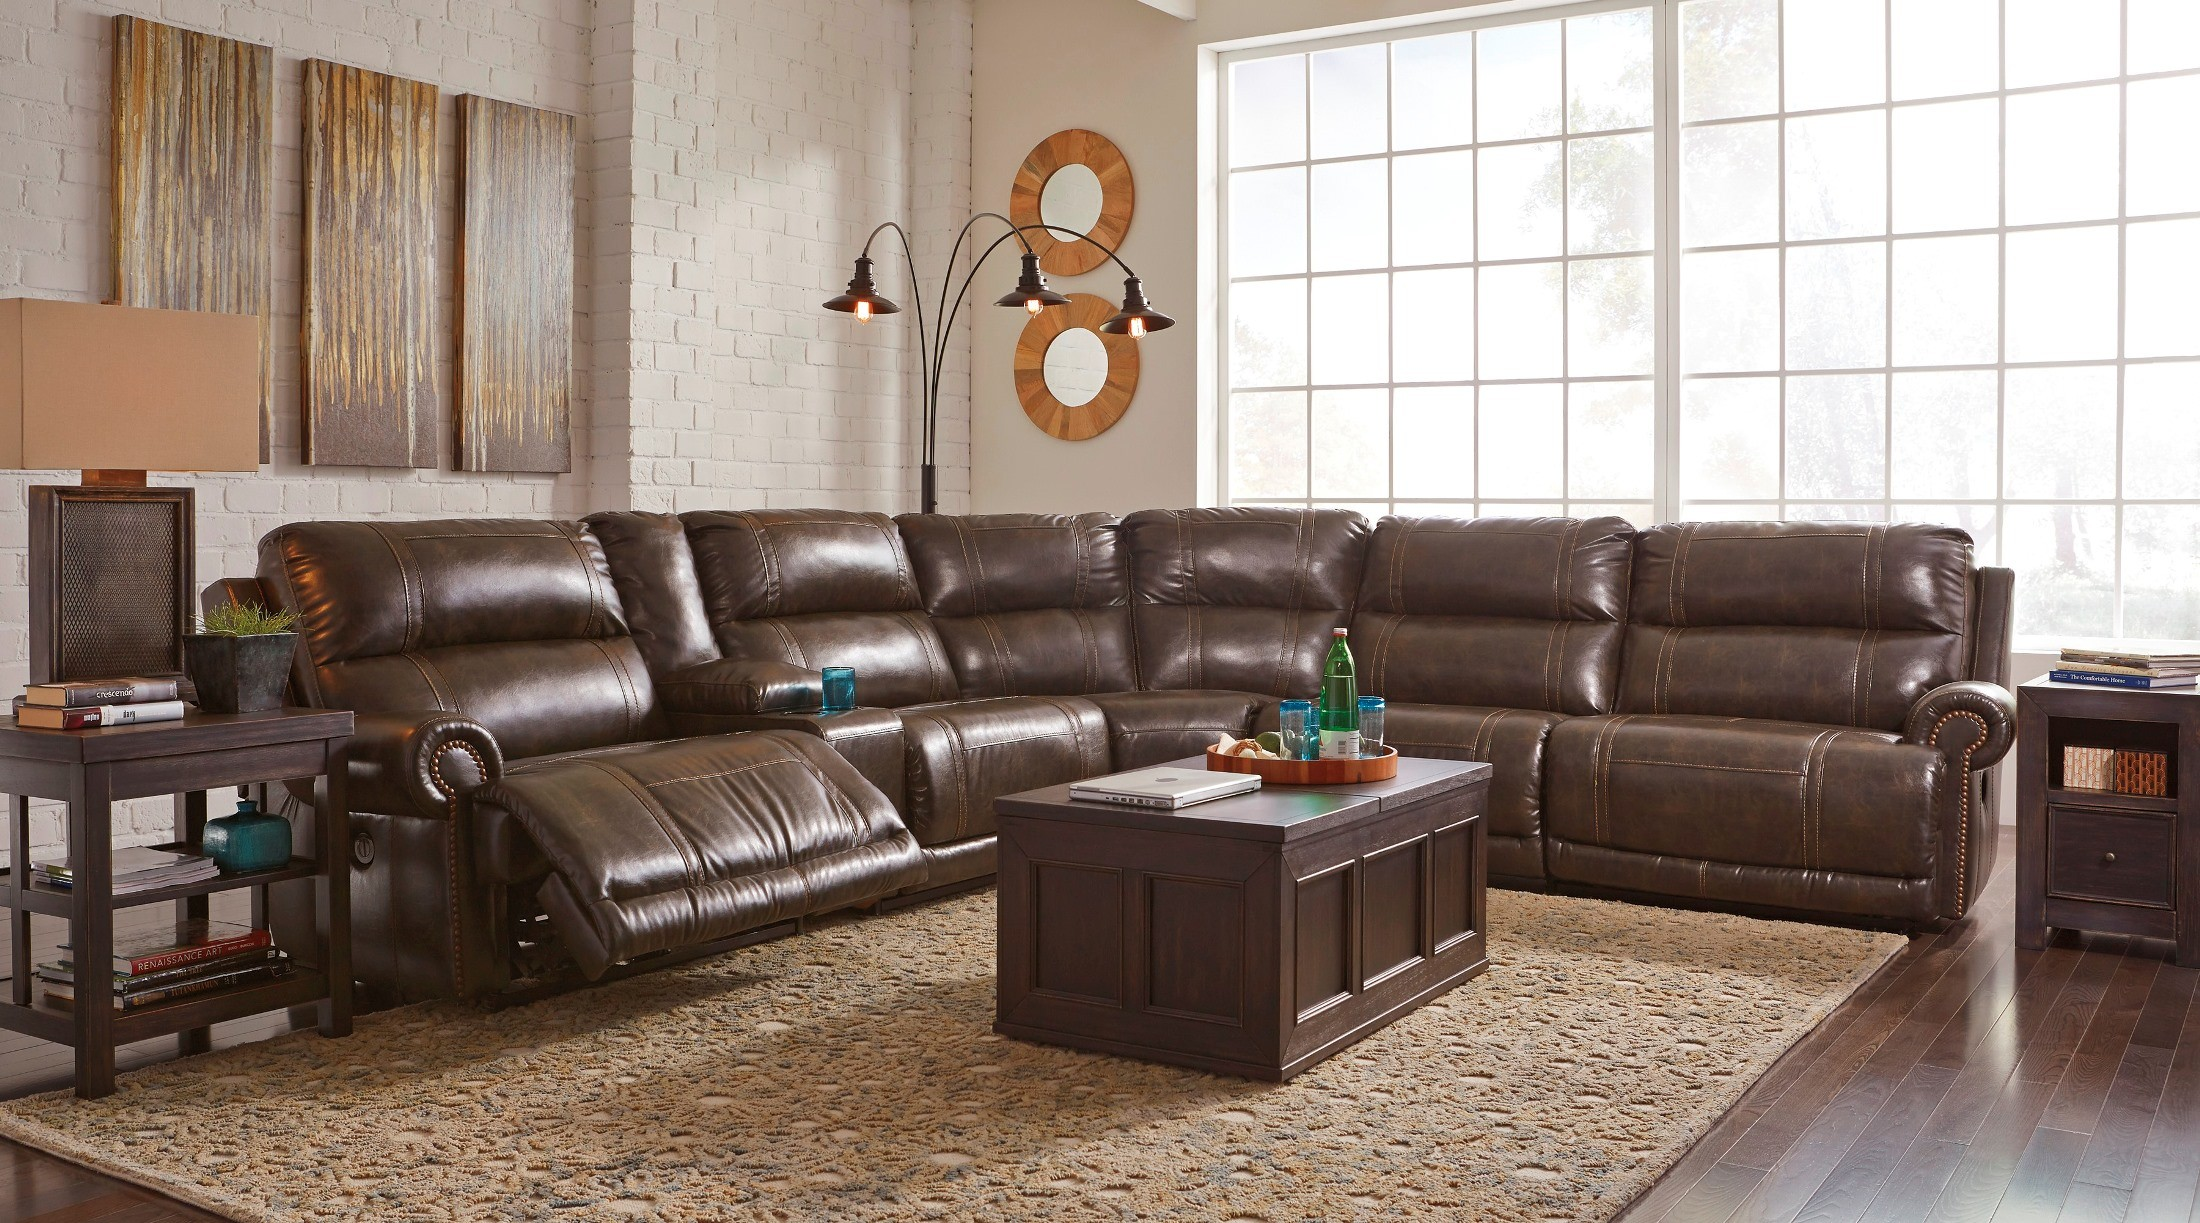 Dak Durablend Antique Reclining Sectional From Ashley 2270040 Coleman Furniture